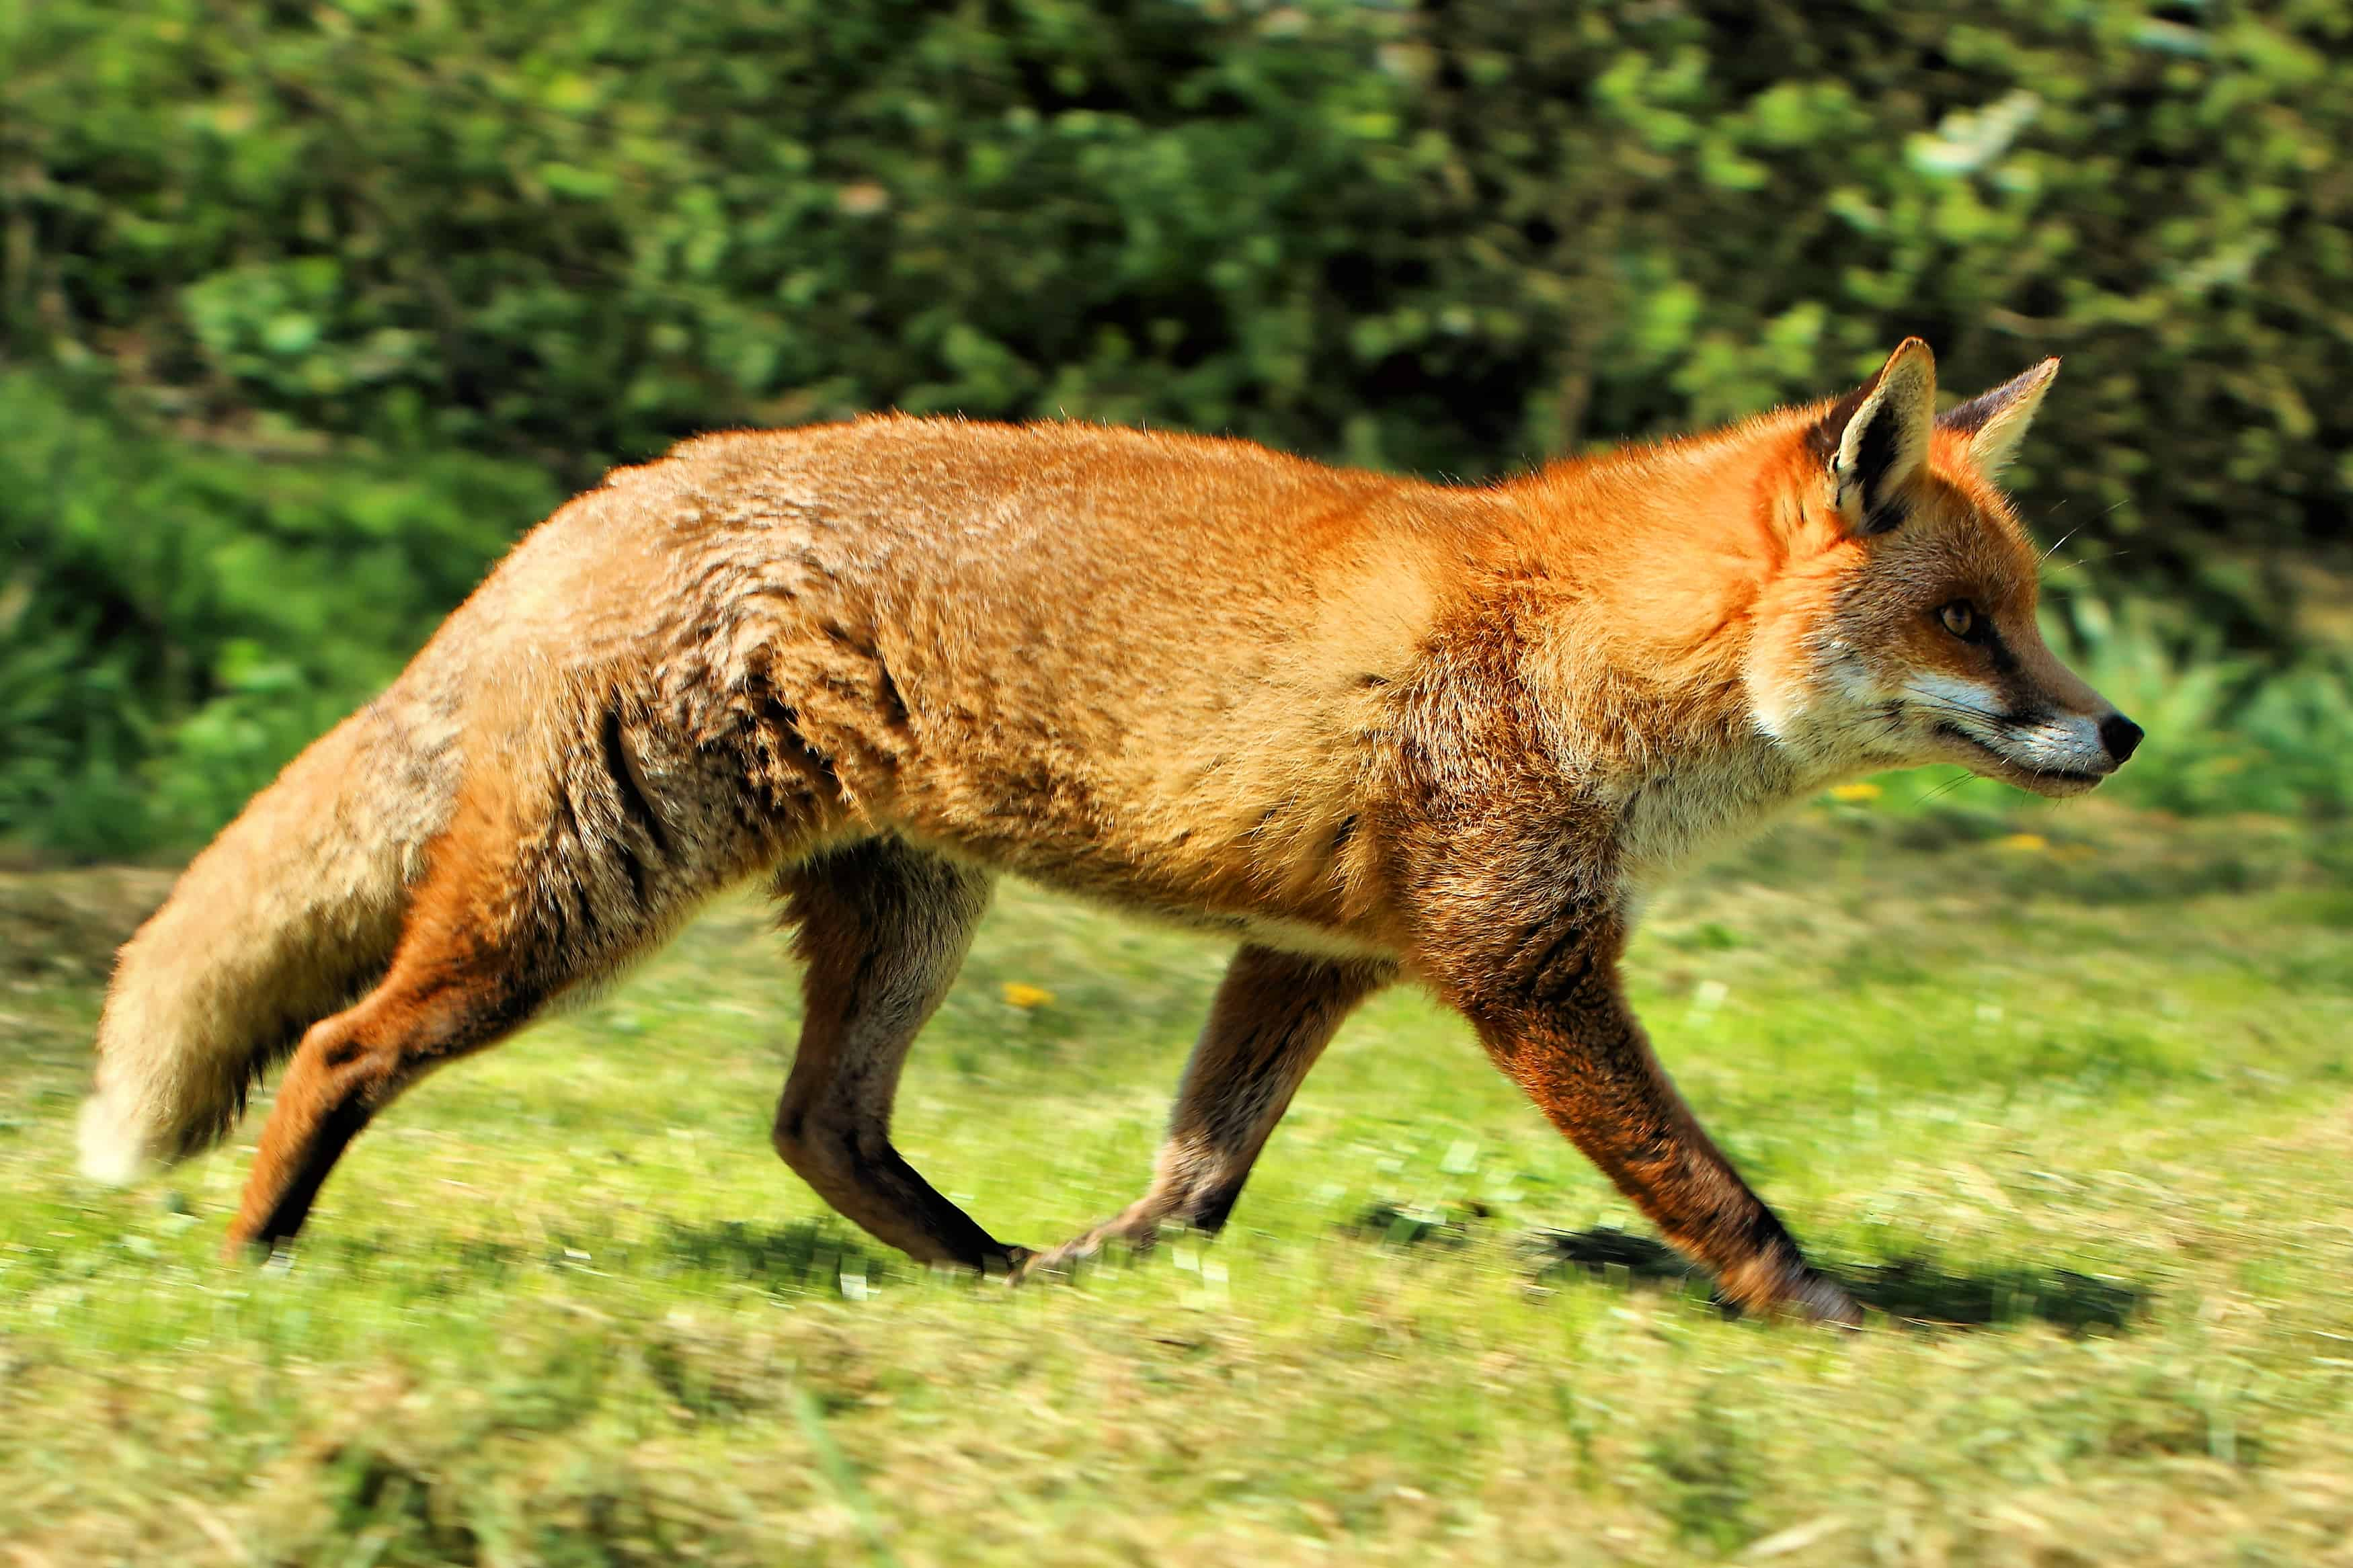 What is average size, length and tail of a fox?